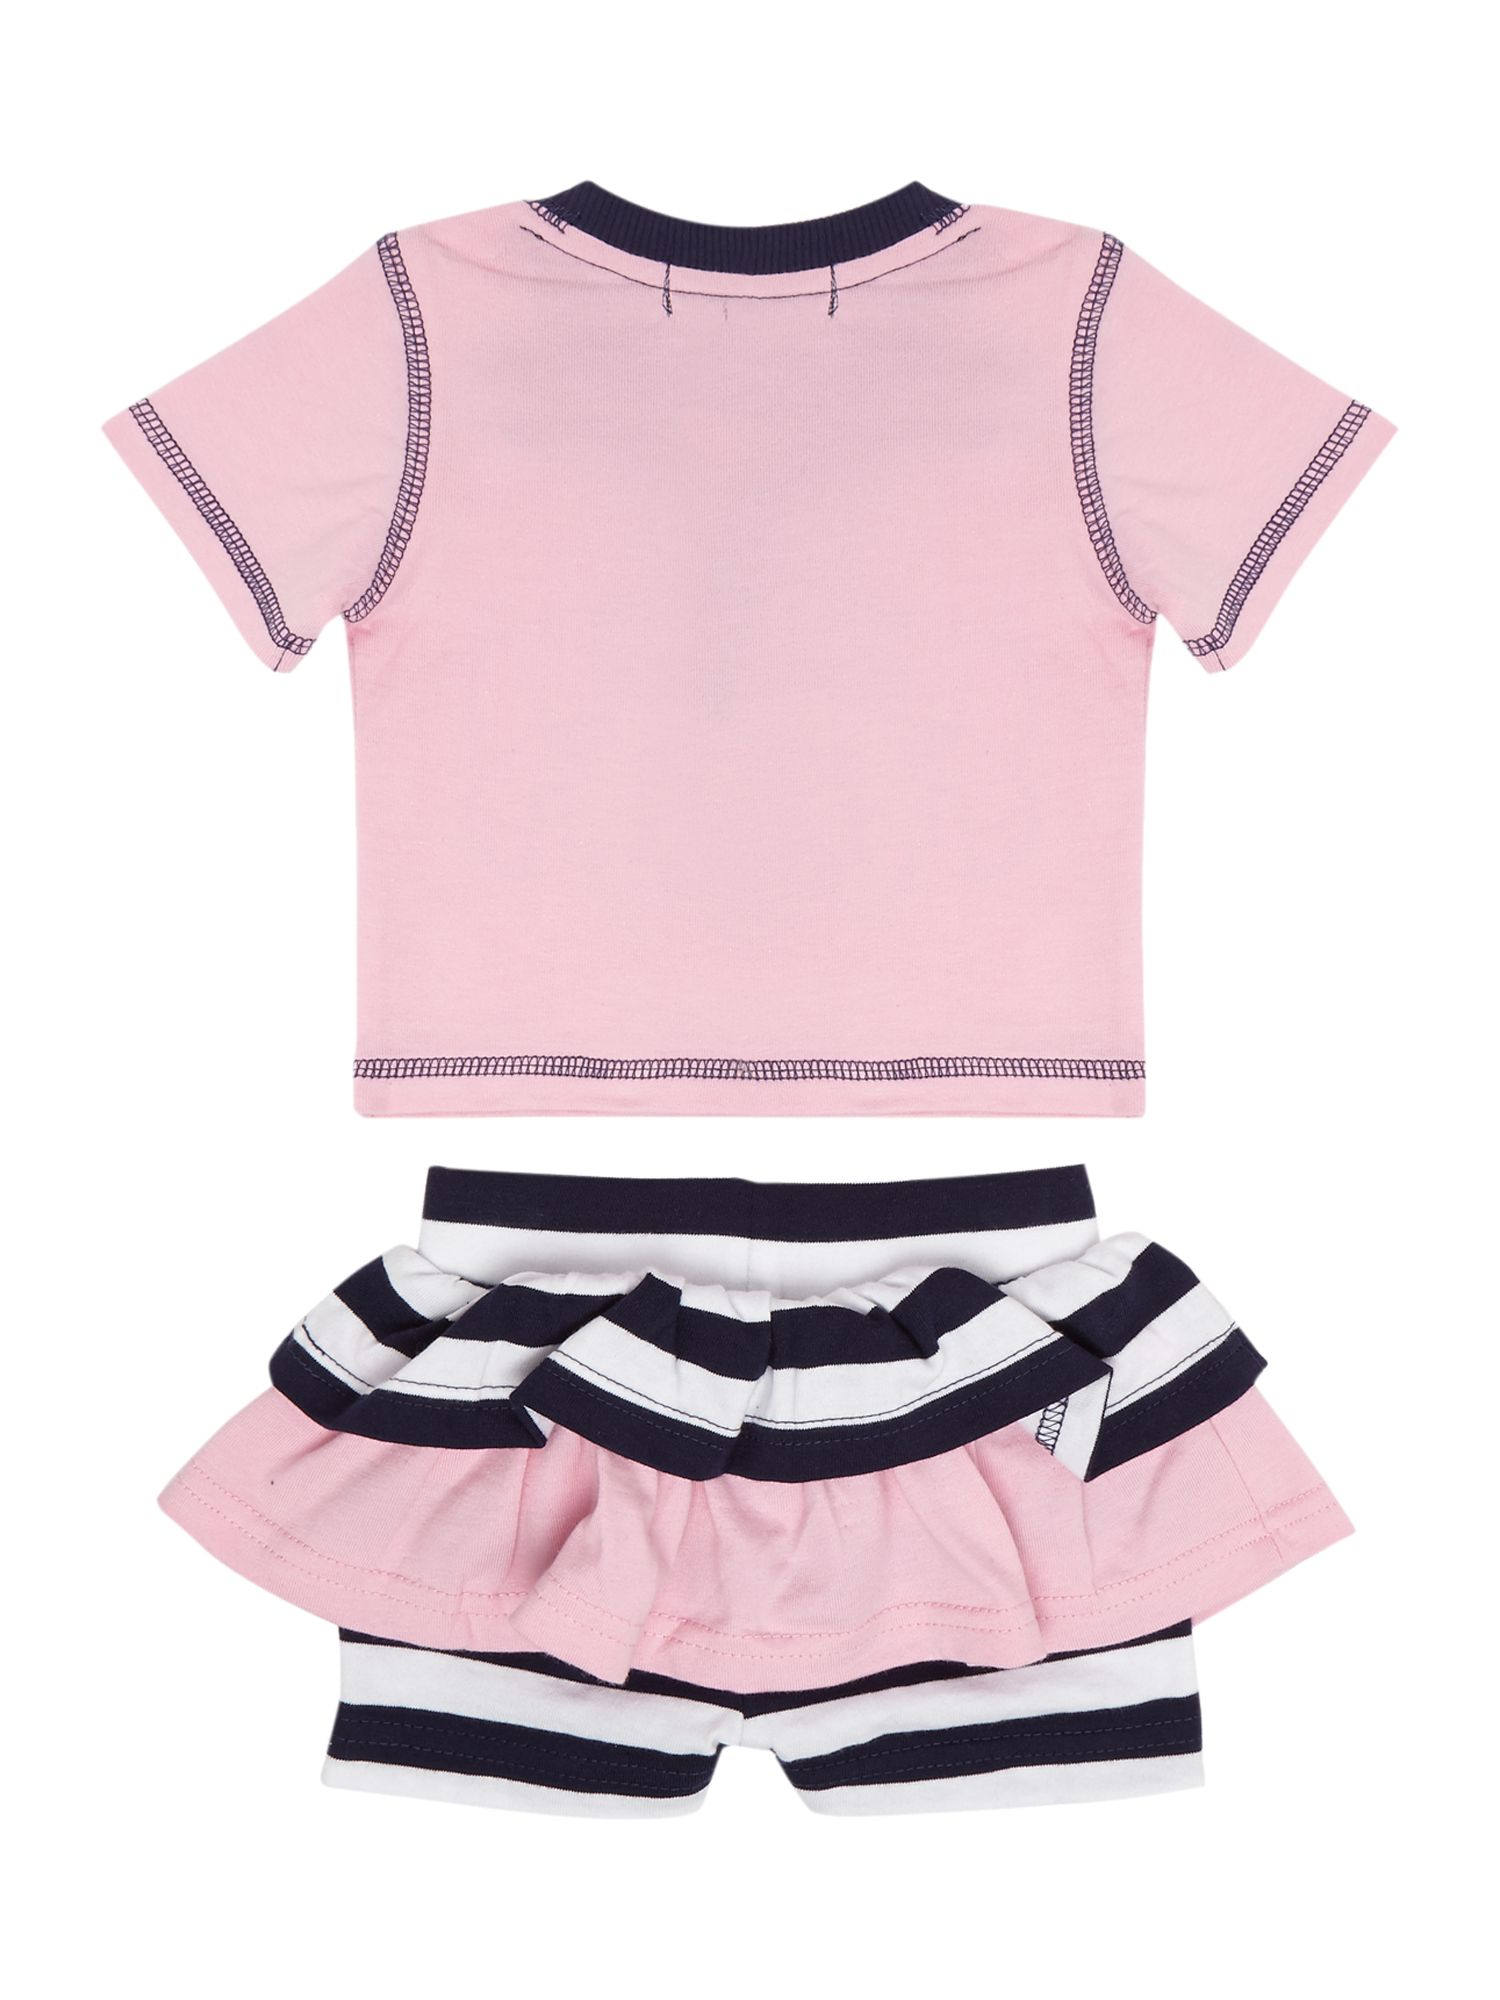 Baby girl skirty short & applique t-shirt set